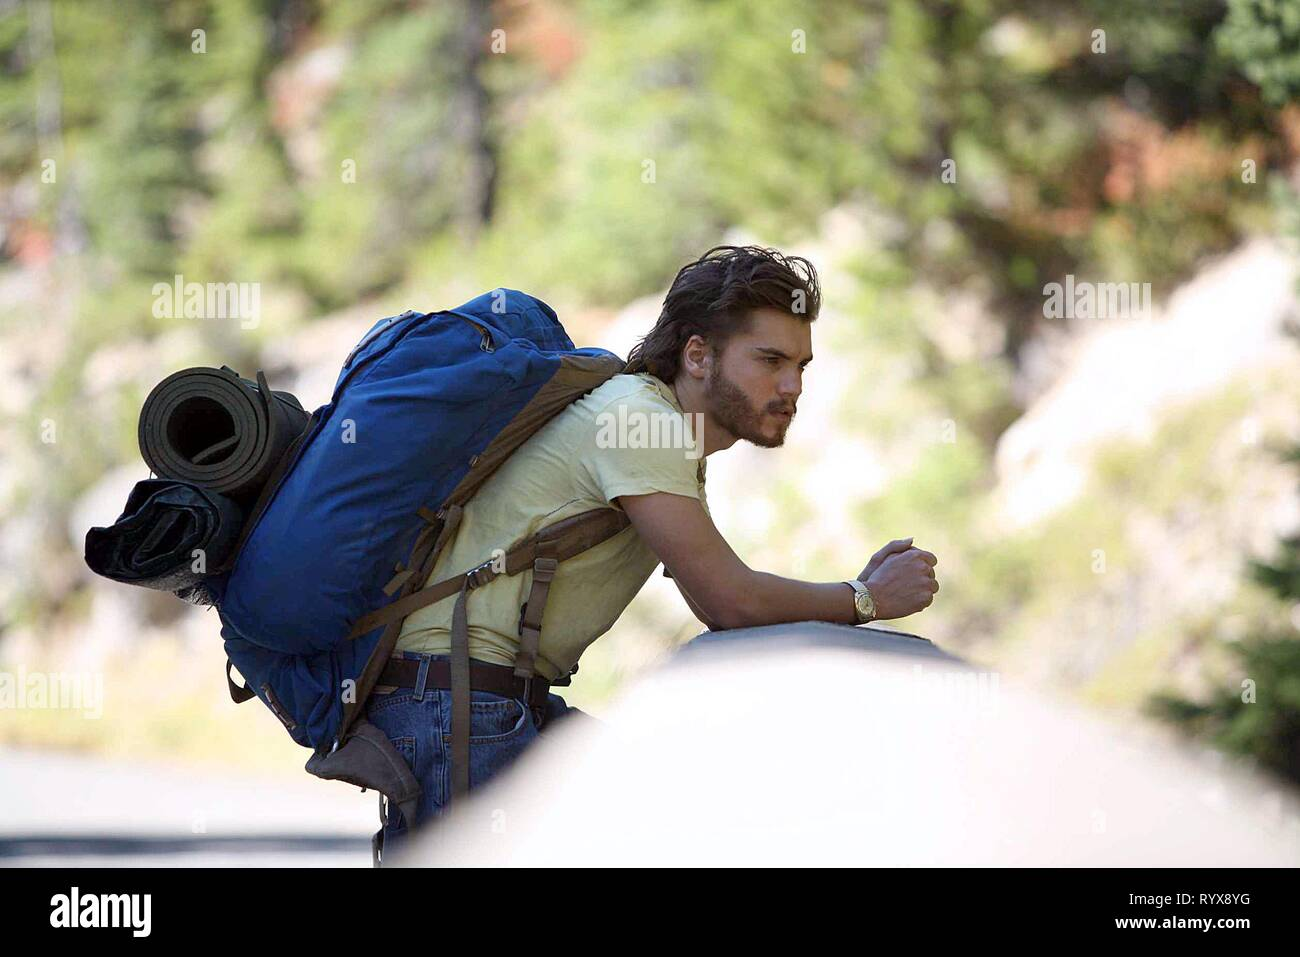 EMILE HIRSCH, INTO THE WILD, 2007 - Stock Image